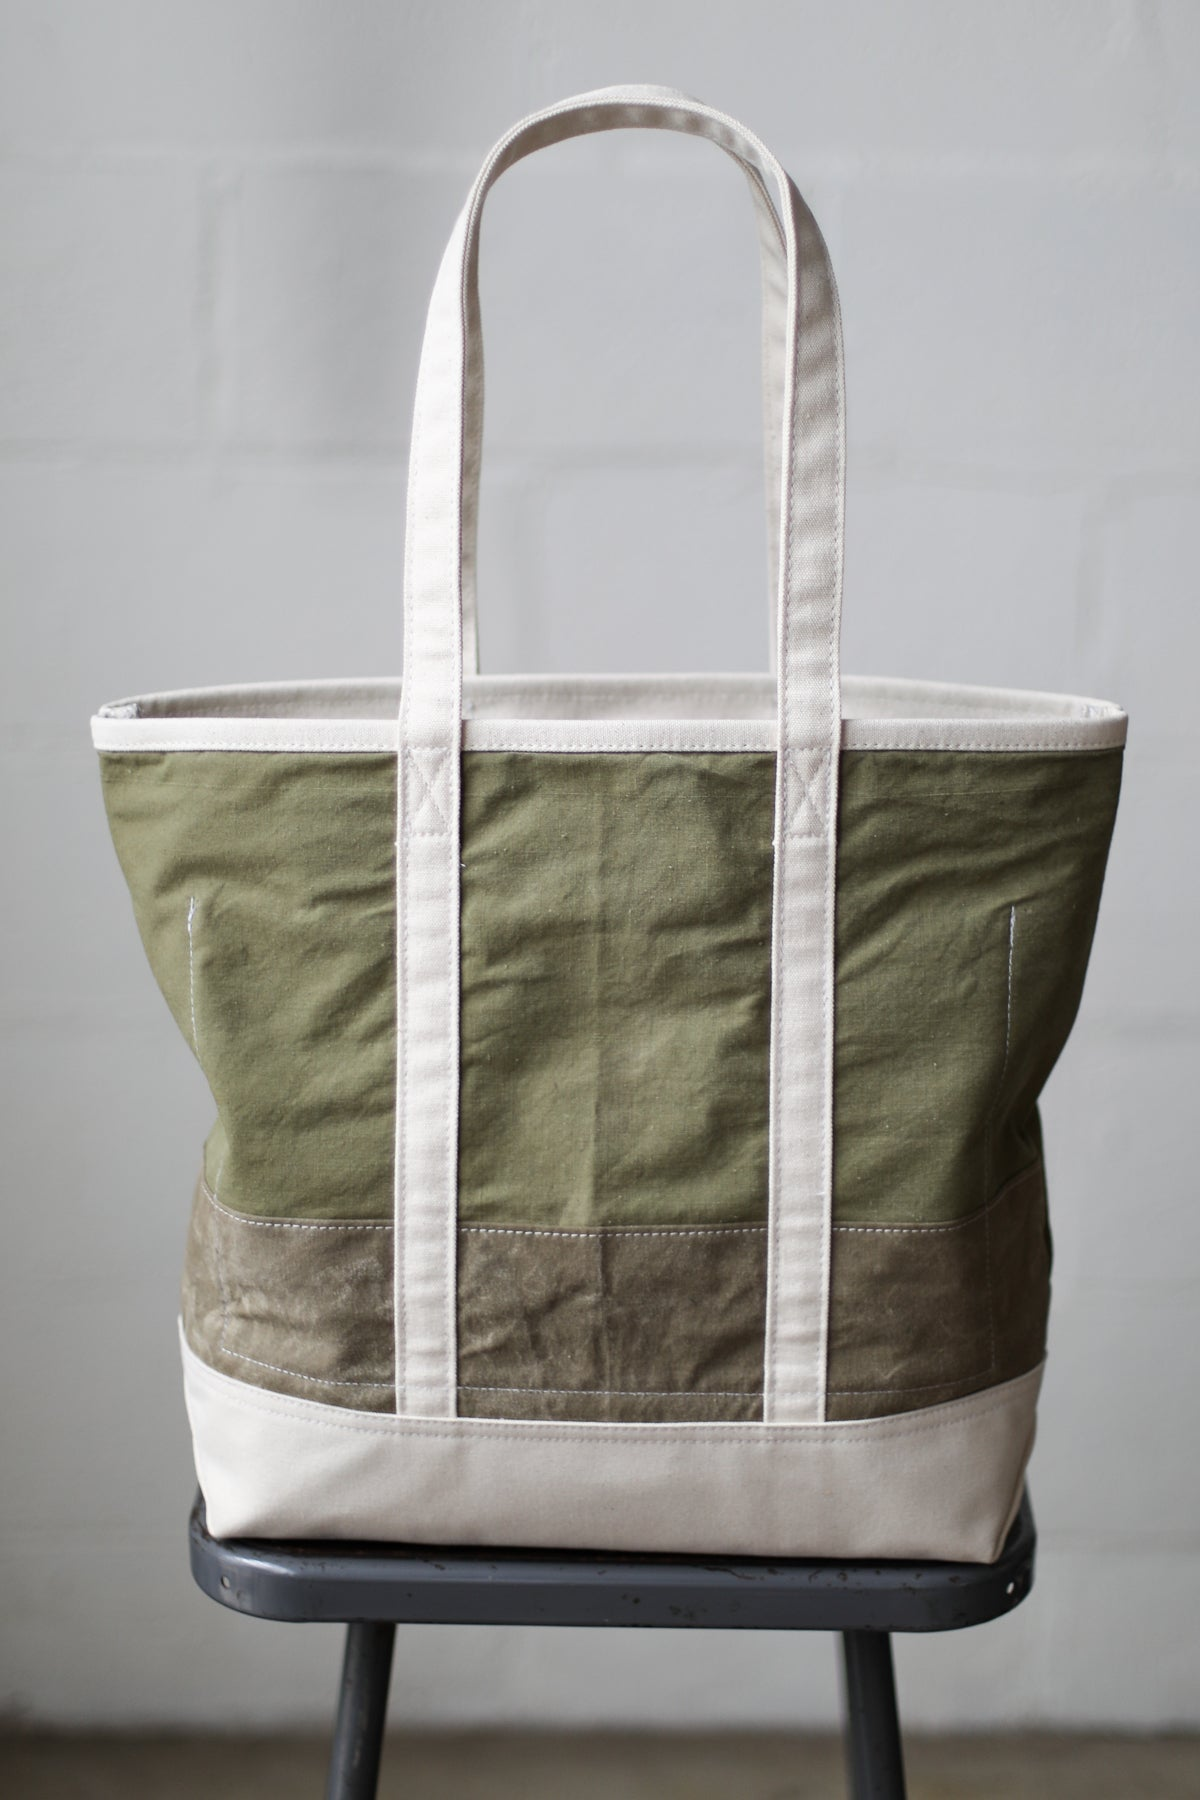 Reclaimed Market Tote No. 036